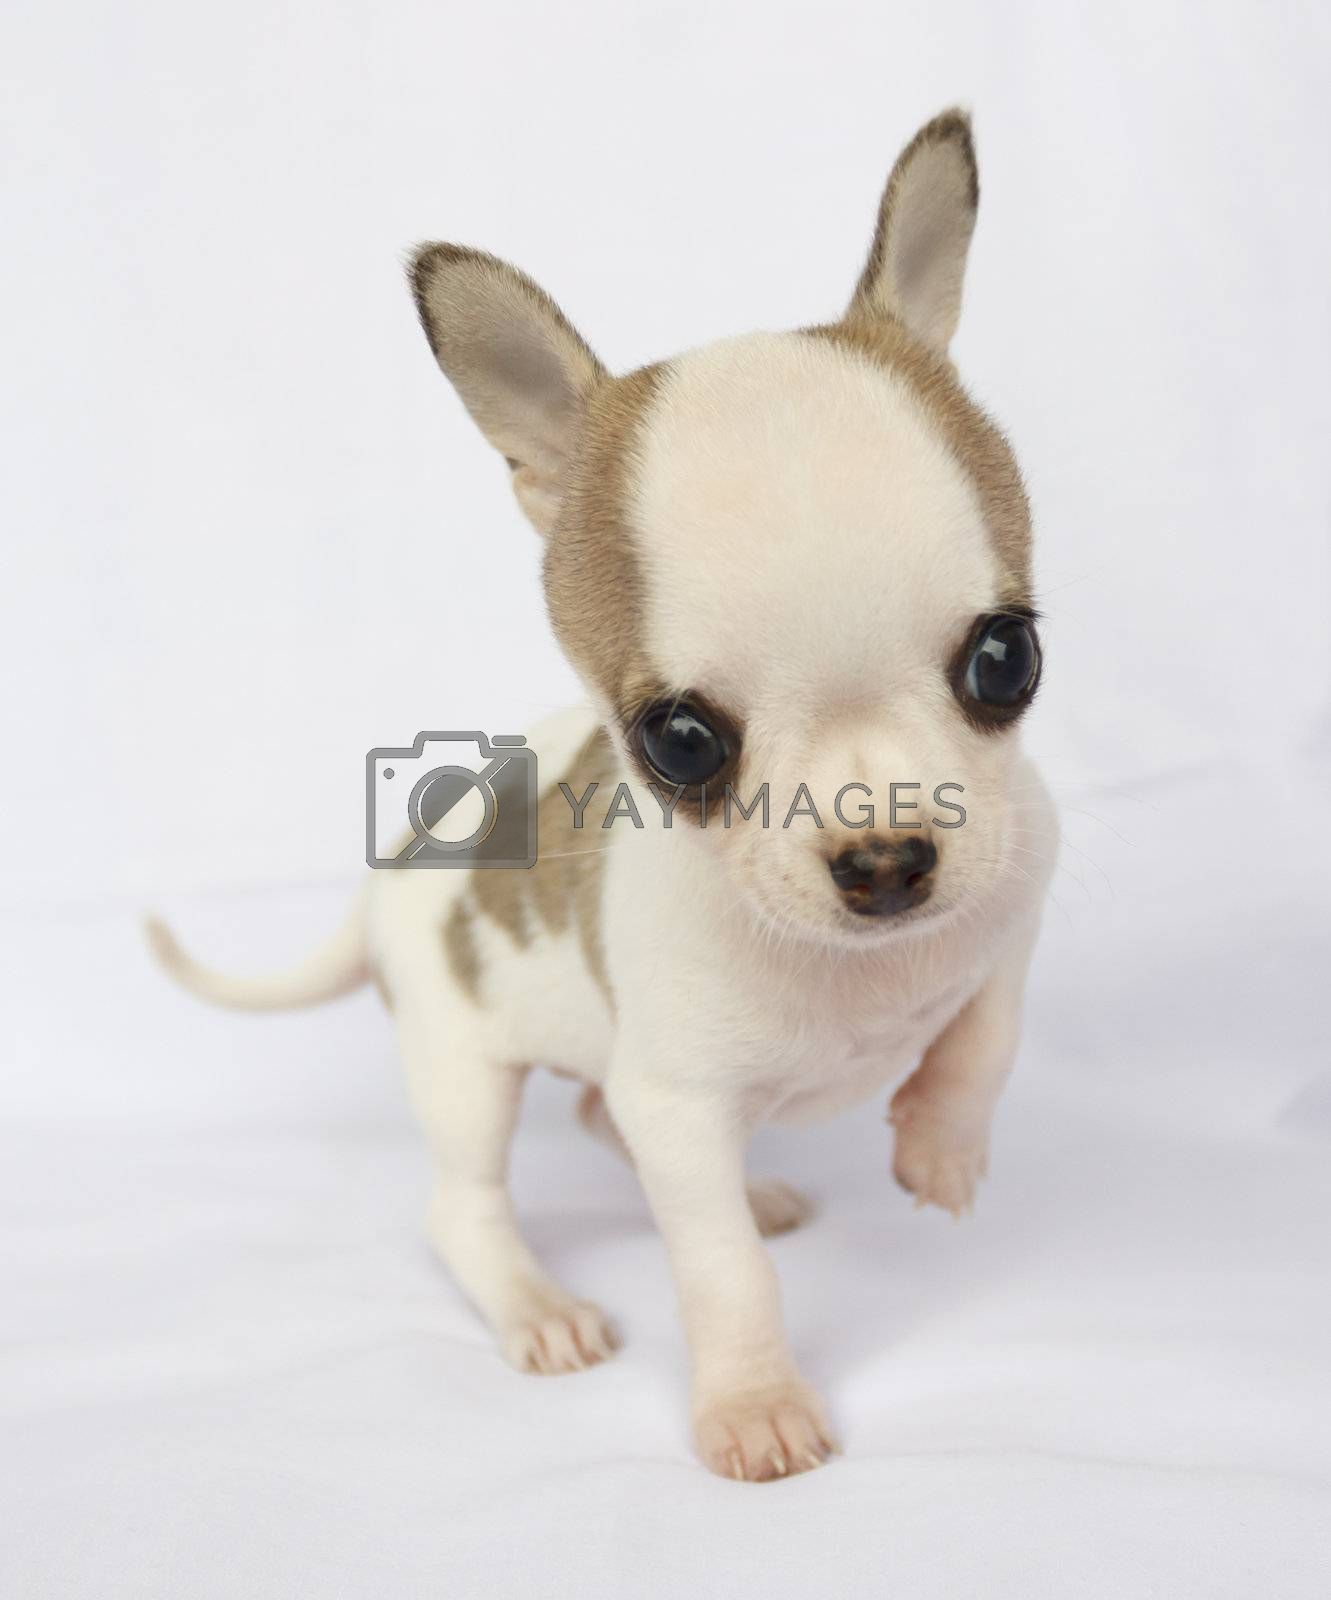 Puppy chihuahua standing on white fabric